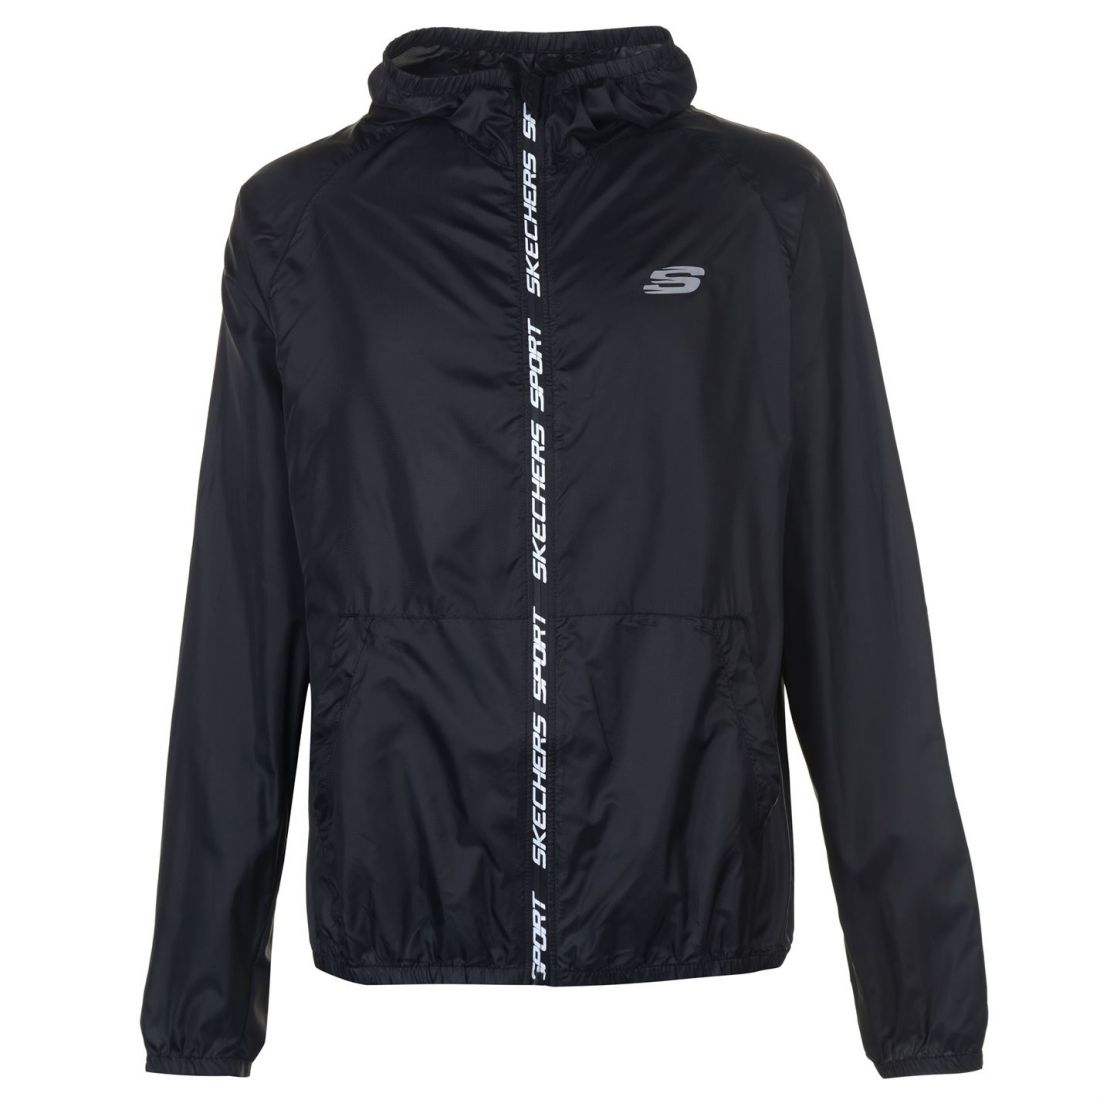 Skechers Mens Lightweight Jacket